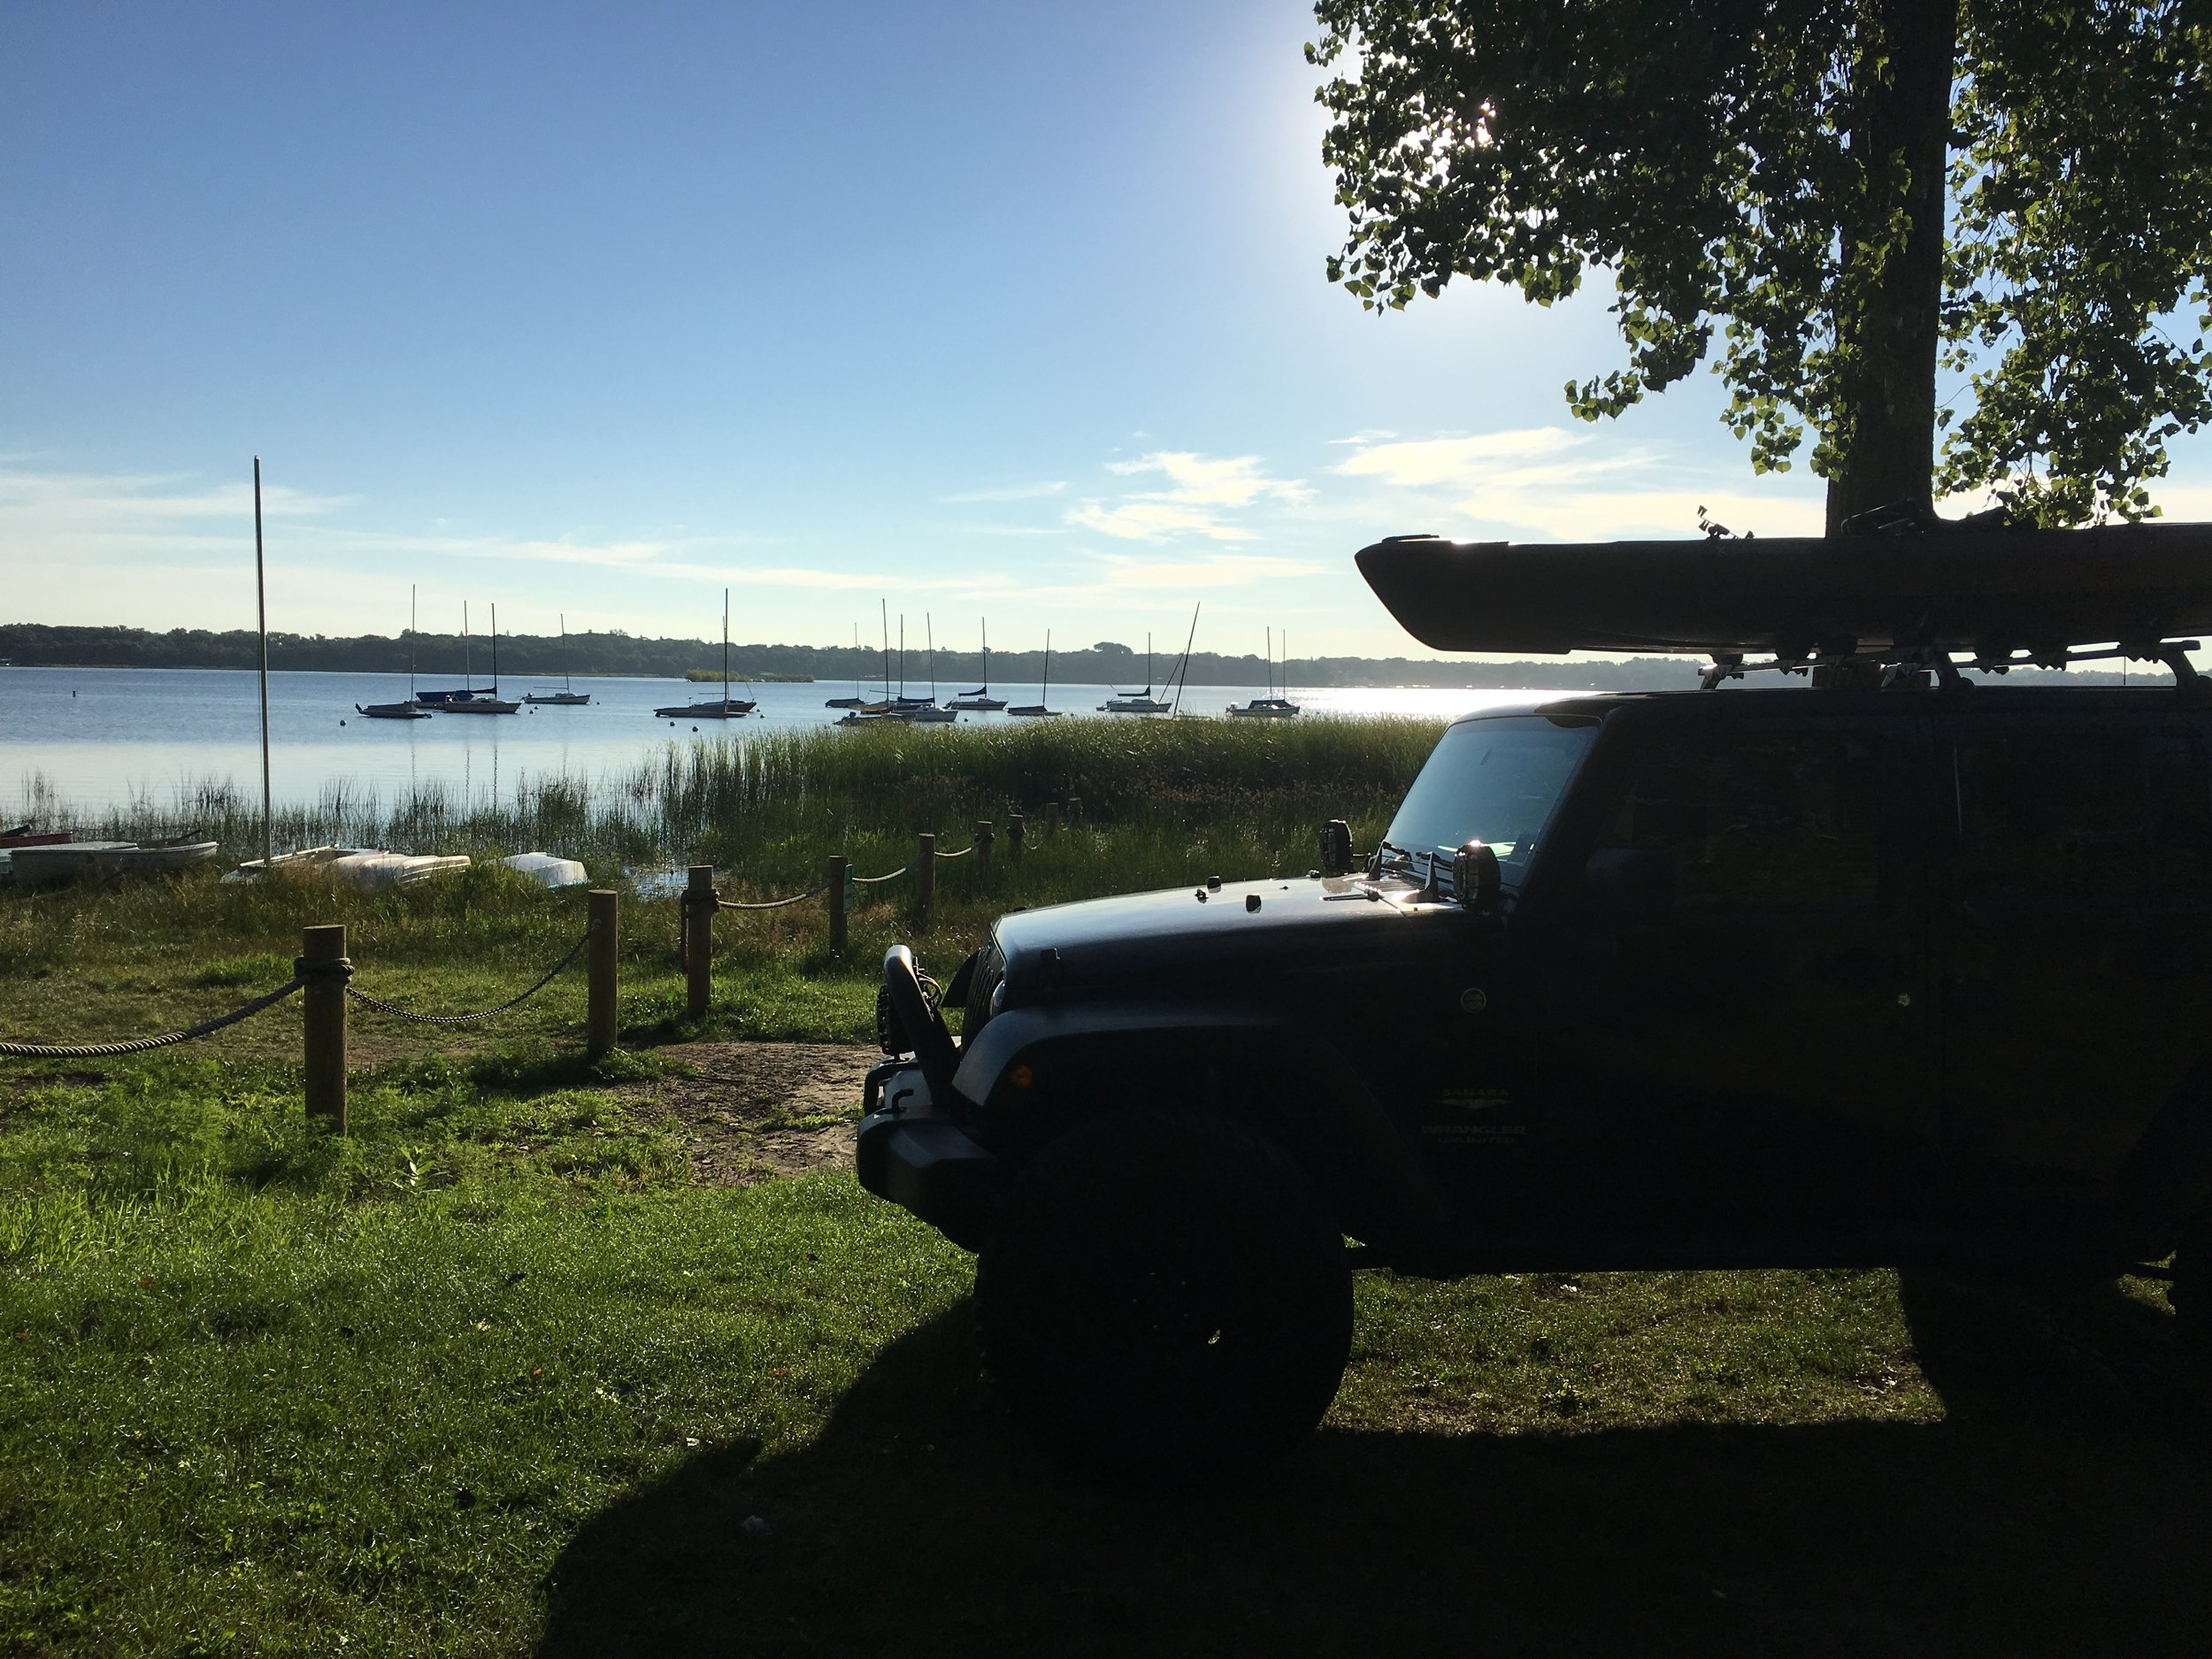 Launching at Matoska Park, just a few minutes from the office.